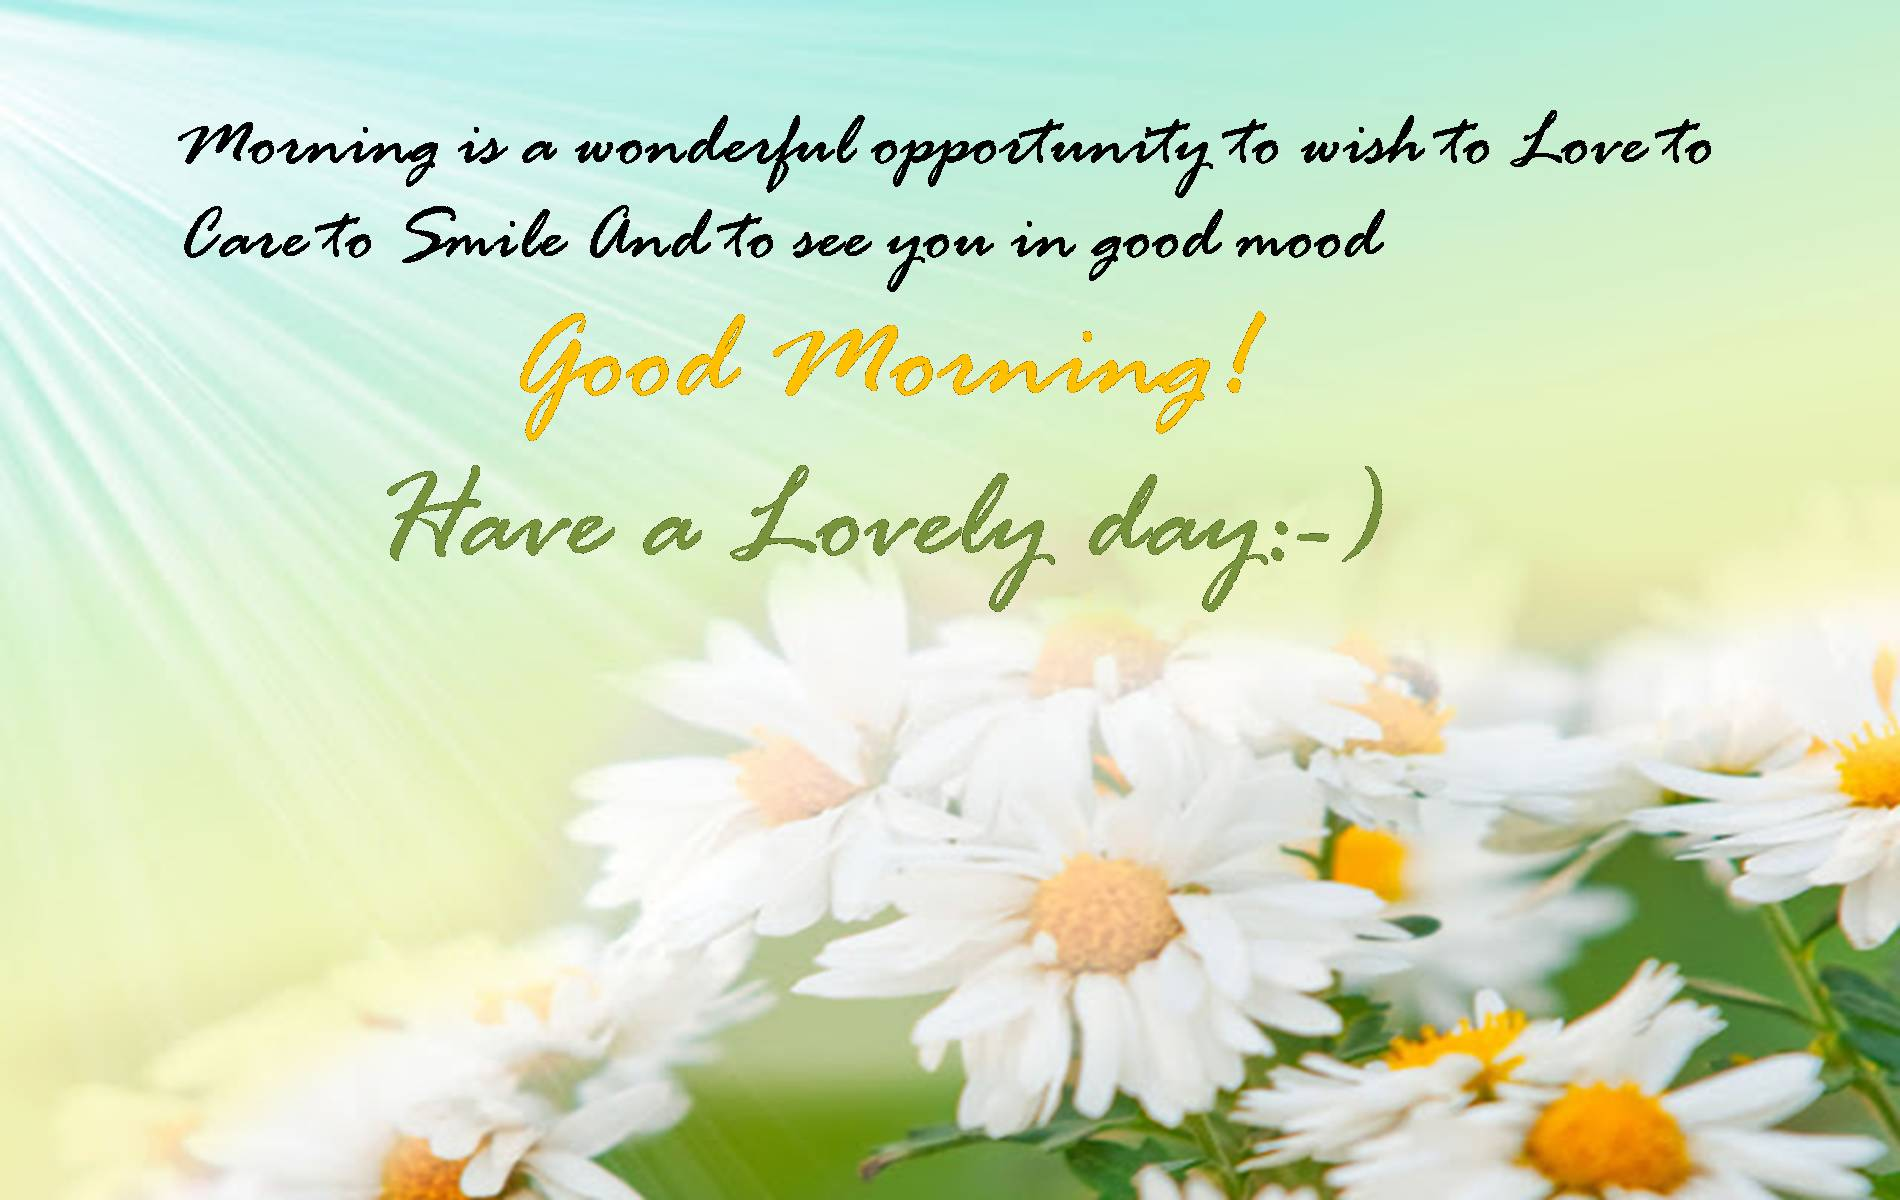 Love Good Morning And Good Night Wallpaper : Good morning Happy Wishes